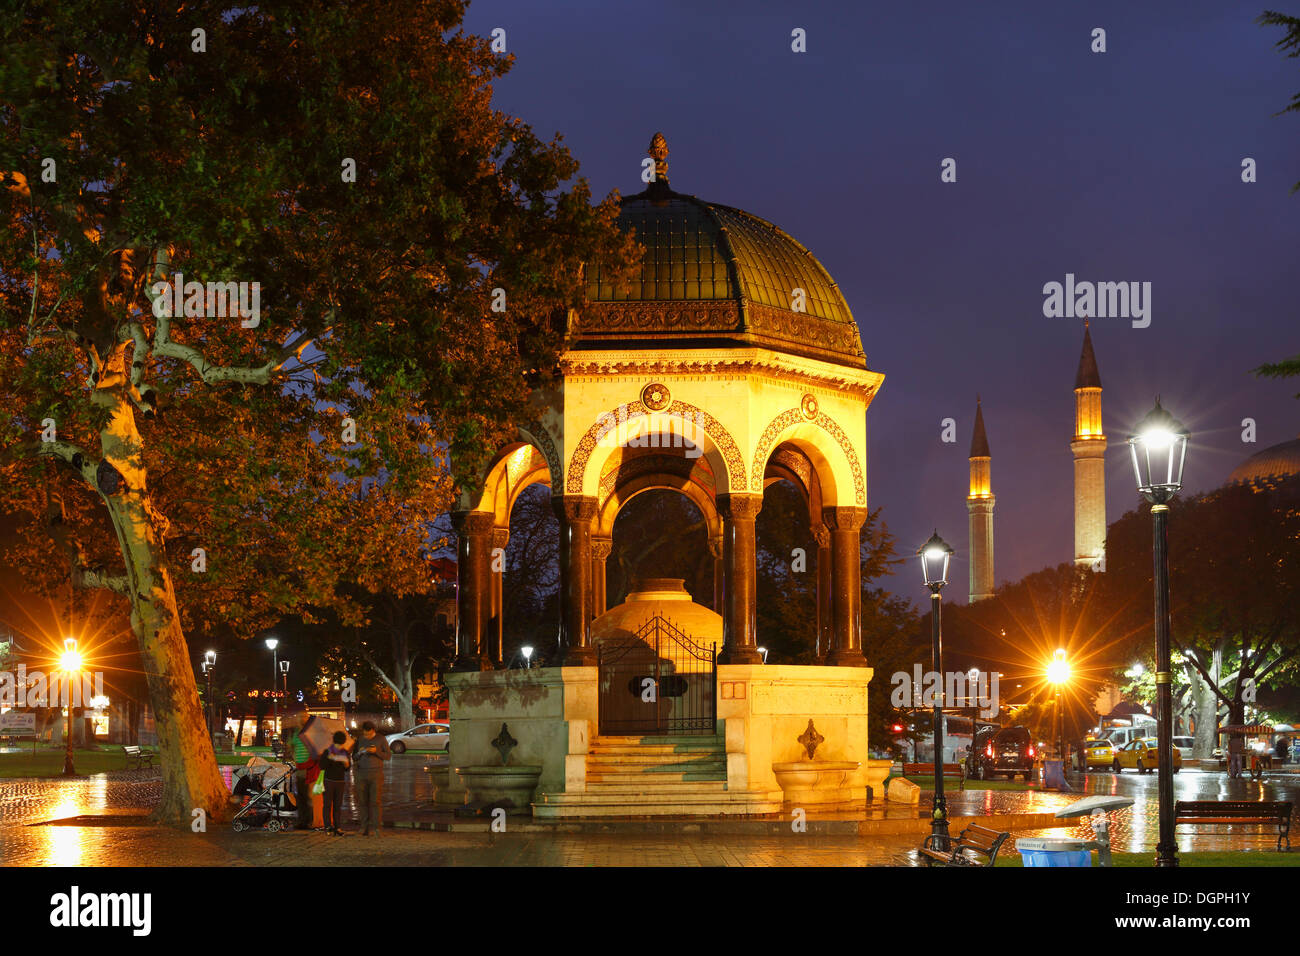 German Fountain in the Hippodrome or At Meydani square, right Hagia Sophia, Istanbul, European side, Istanbul Province, Turkey - Stock Image